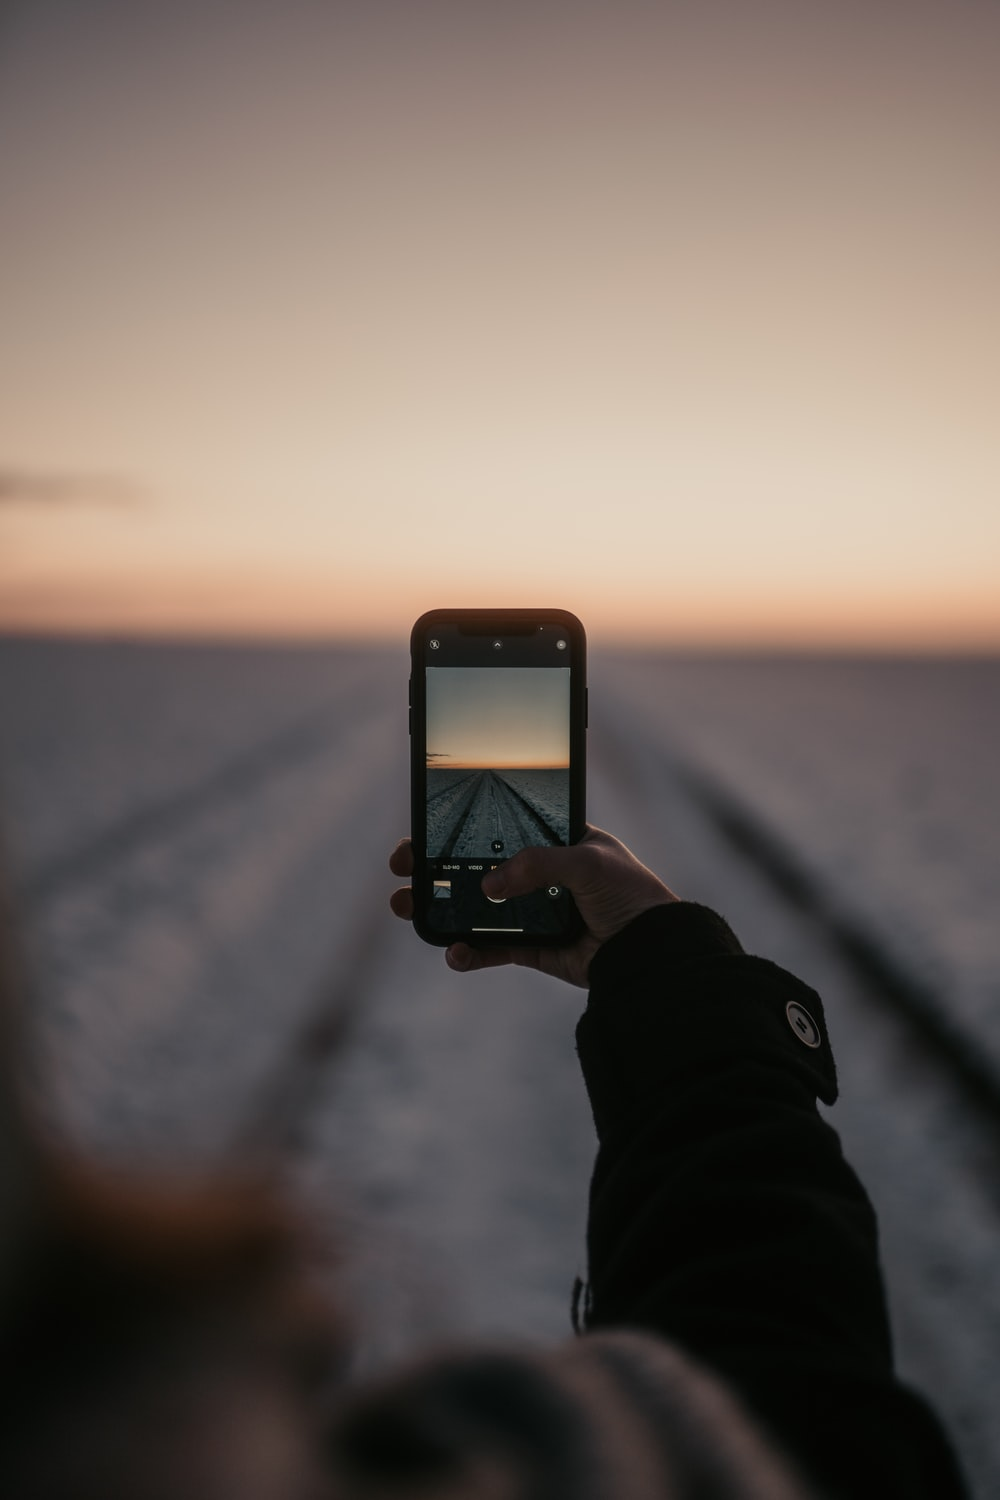 person holding iphone taking photo of sun